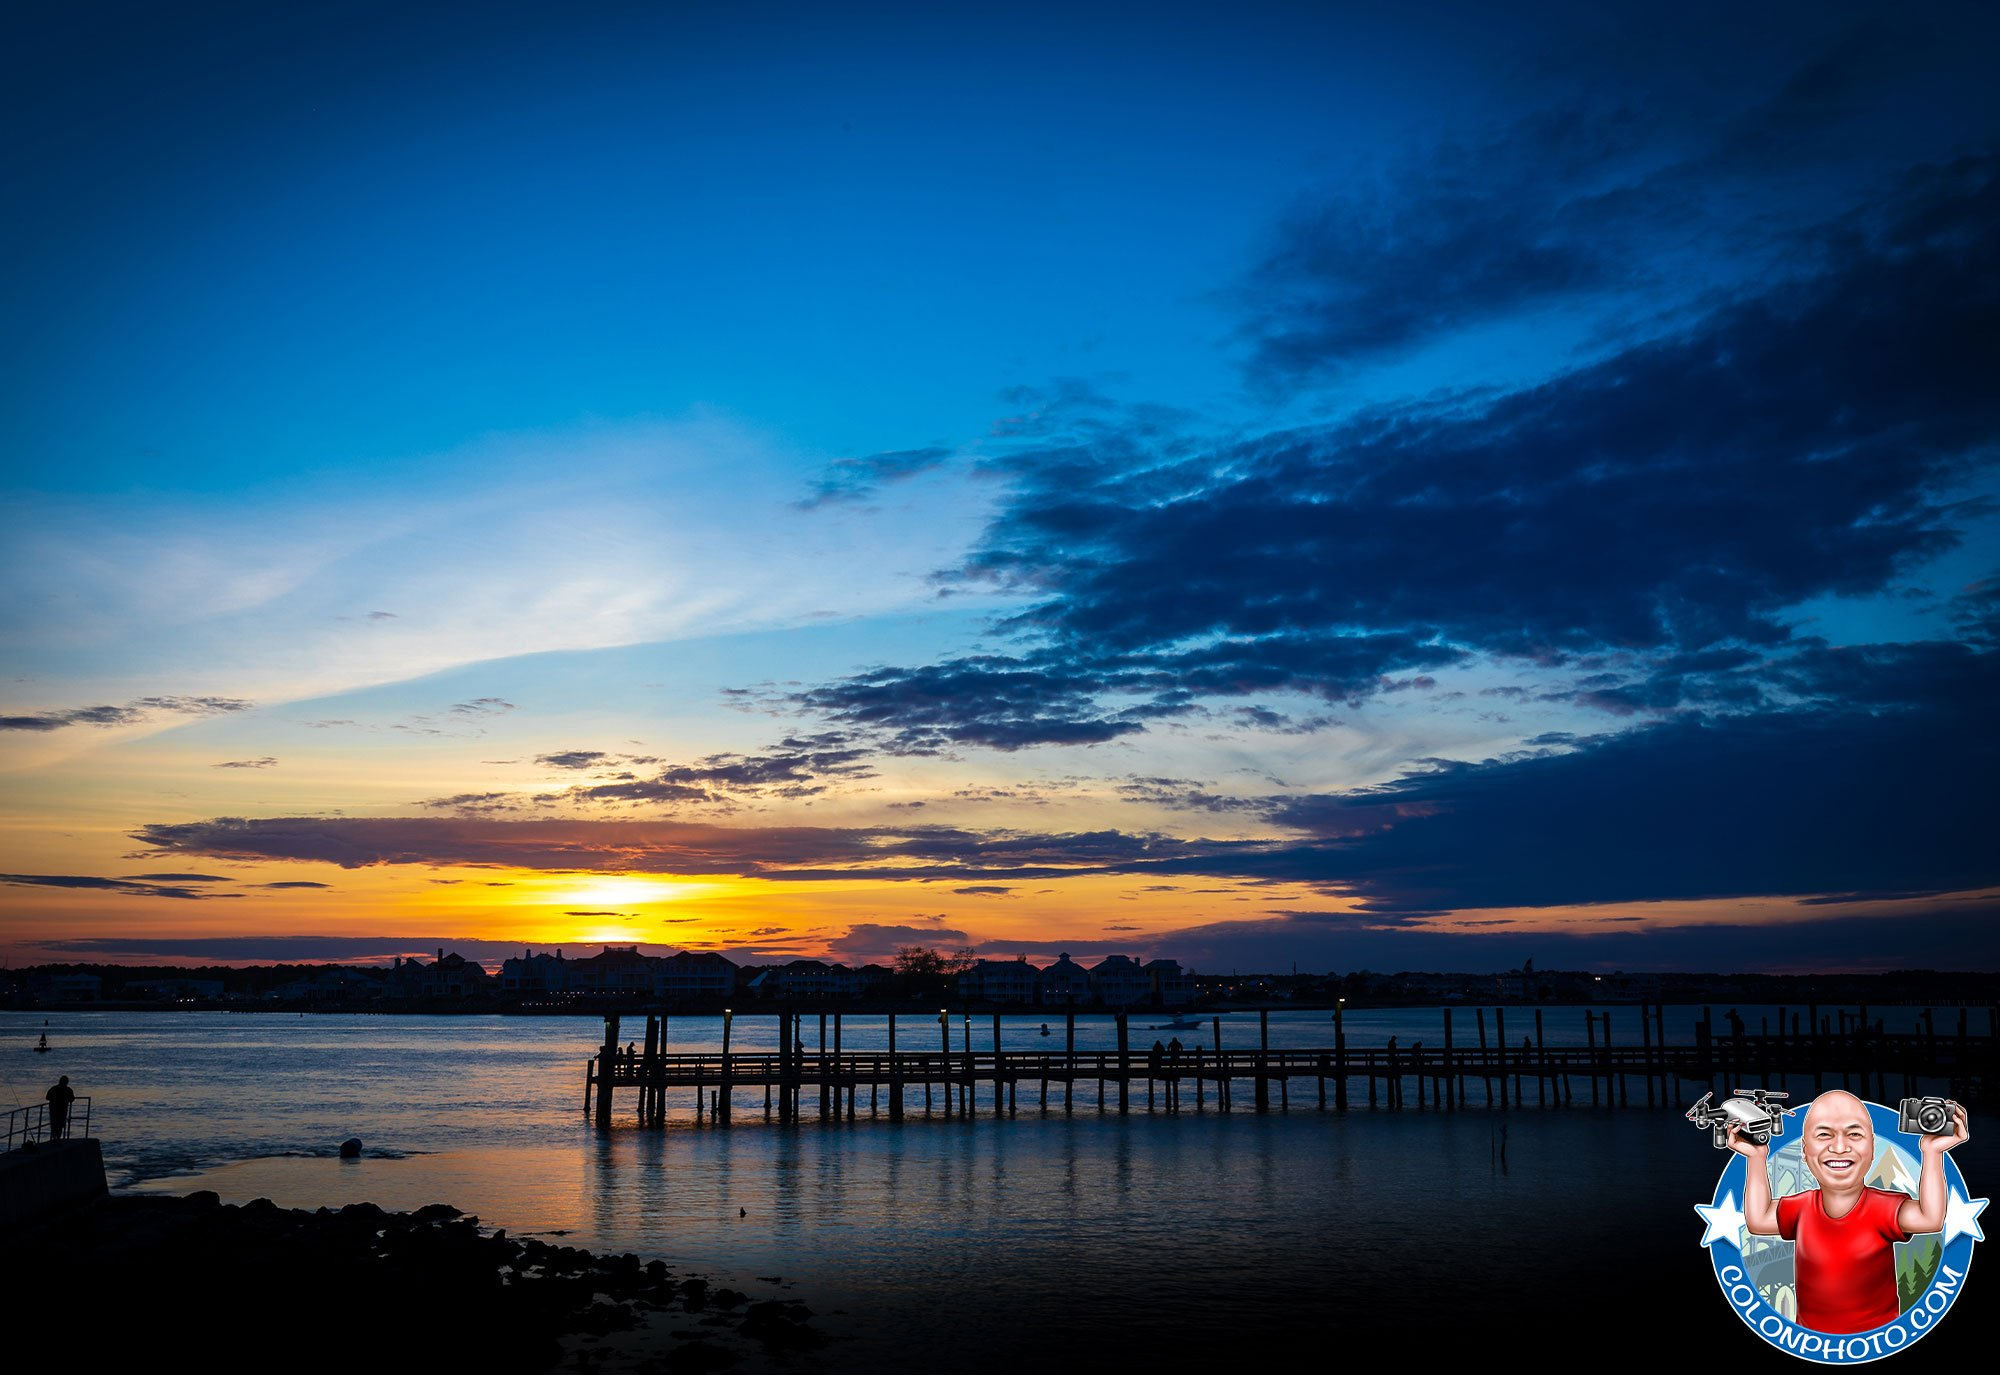 OCEAN-CITY-MARYLAND---EPIC-BEAUTIFUL-SUNSET-PHOTO-BLUE-HOUR---colonphoto.com